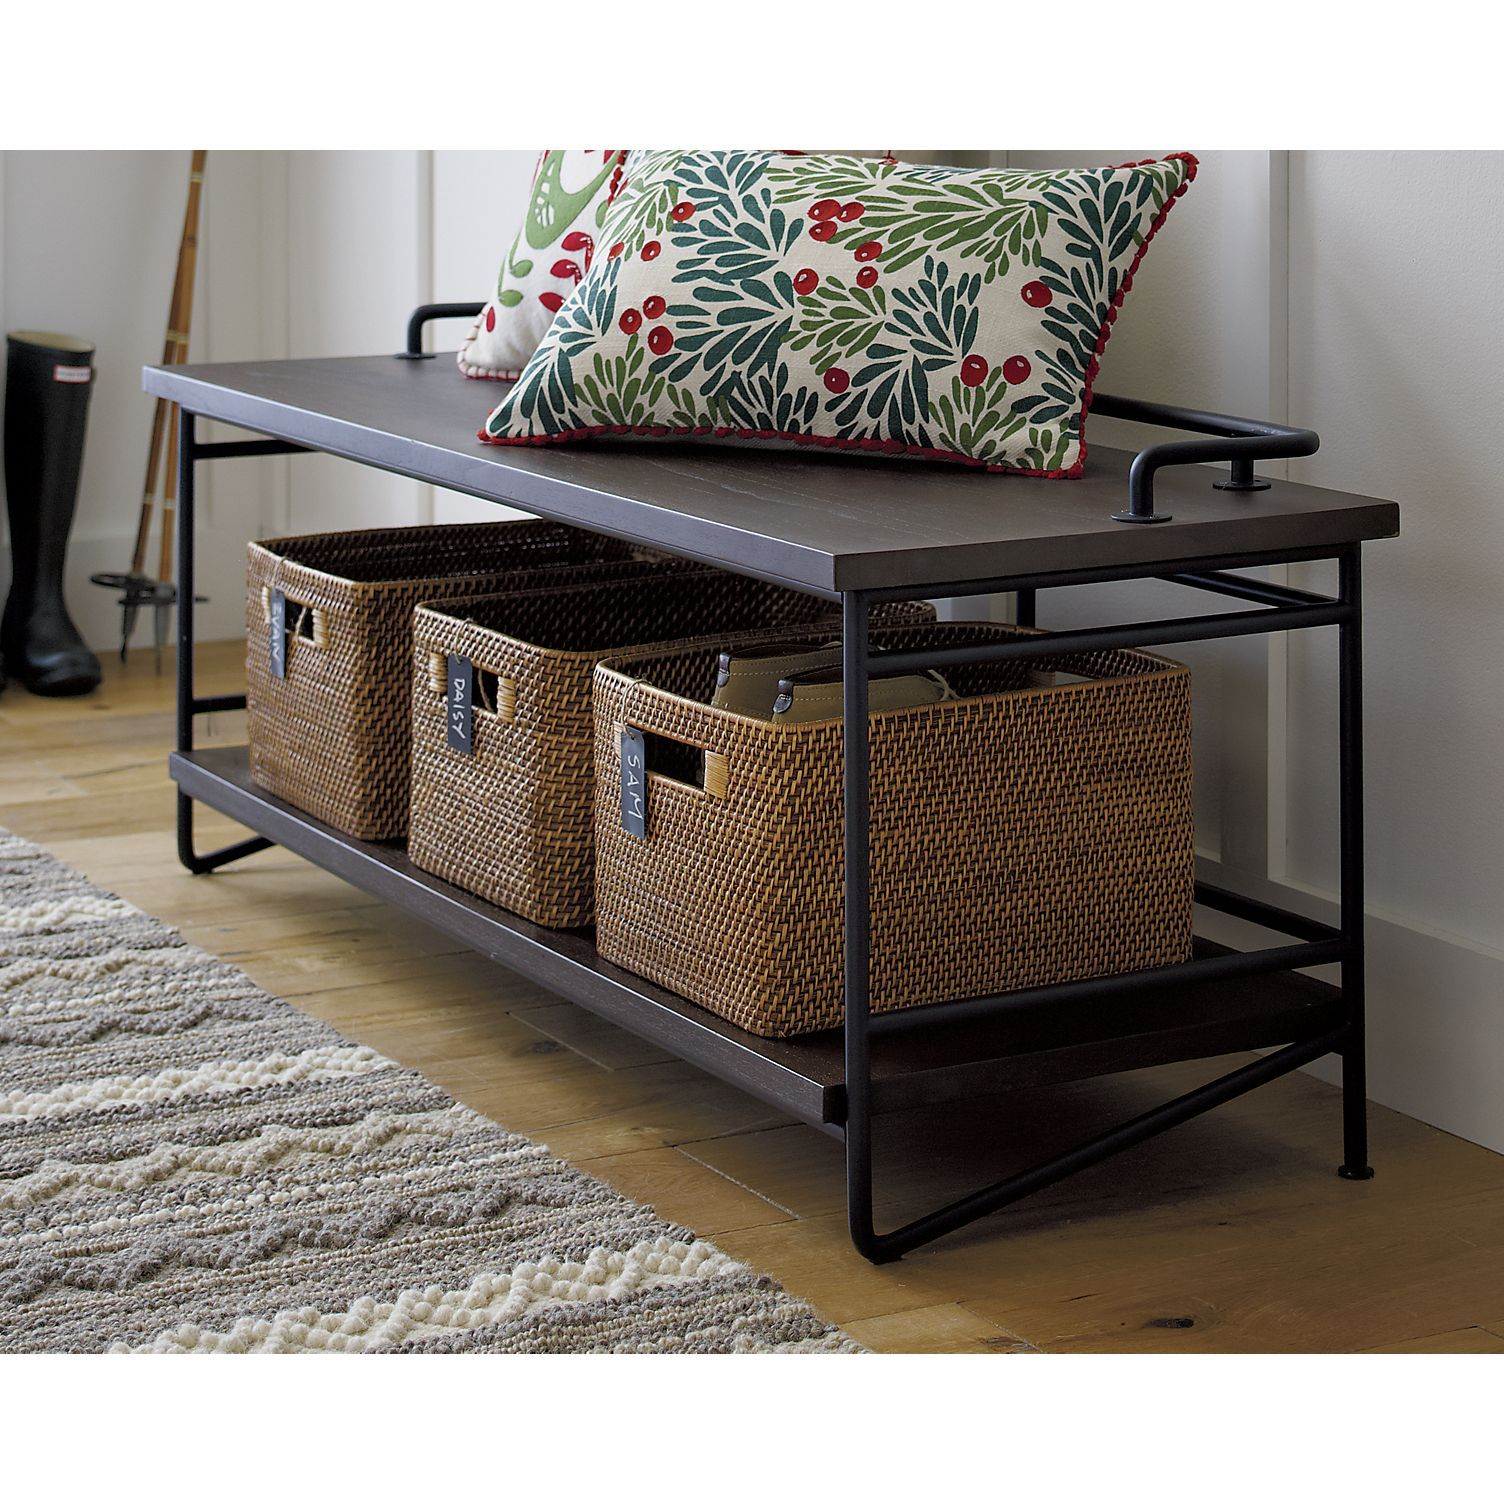 Andes Bench In Benches Crate And Barrel Home Decor Crate